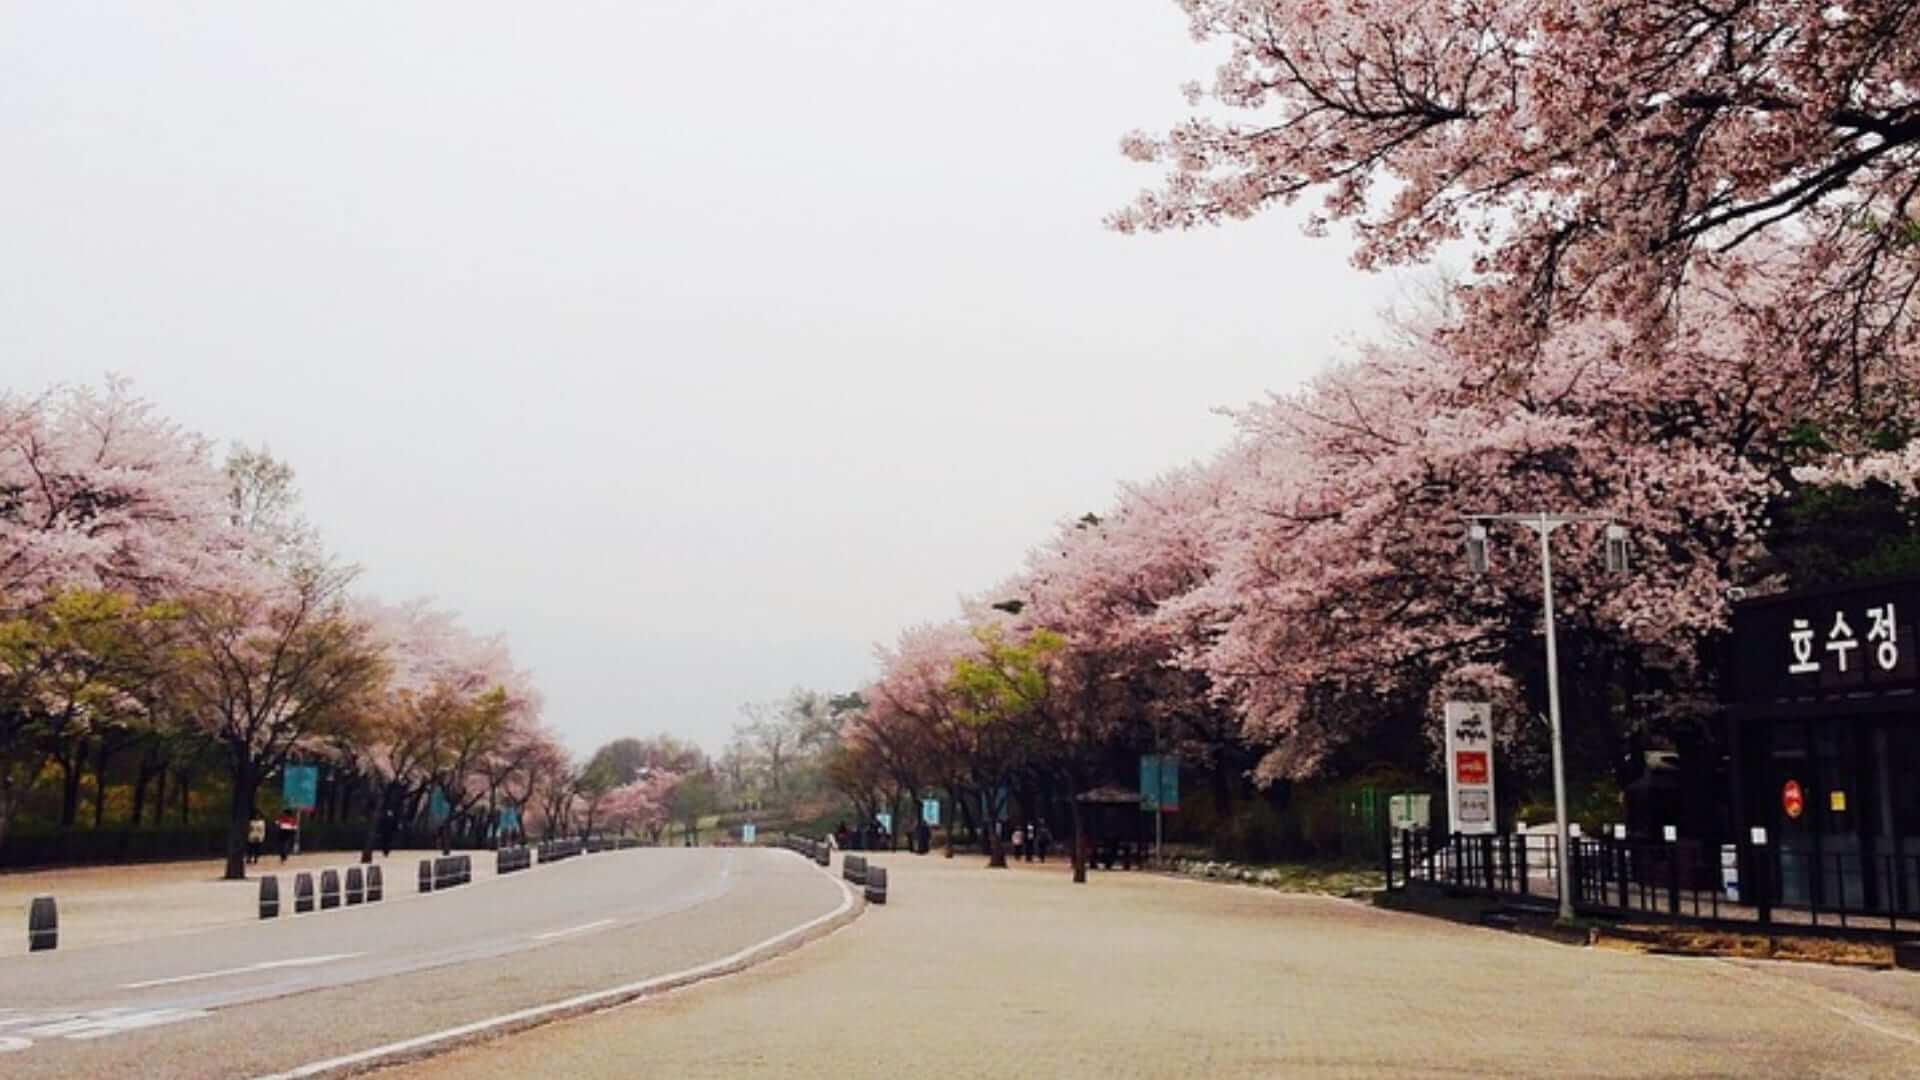 A street with pink cherry blossom trees next to it in an amusement park in Korea.